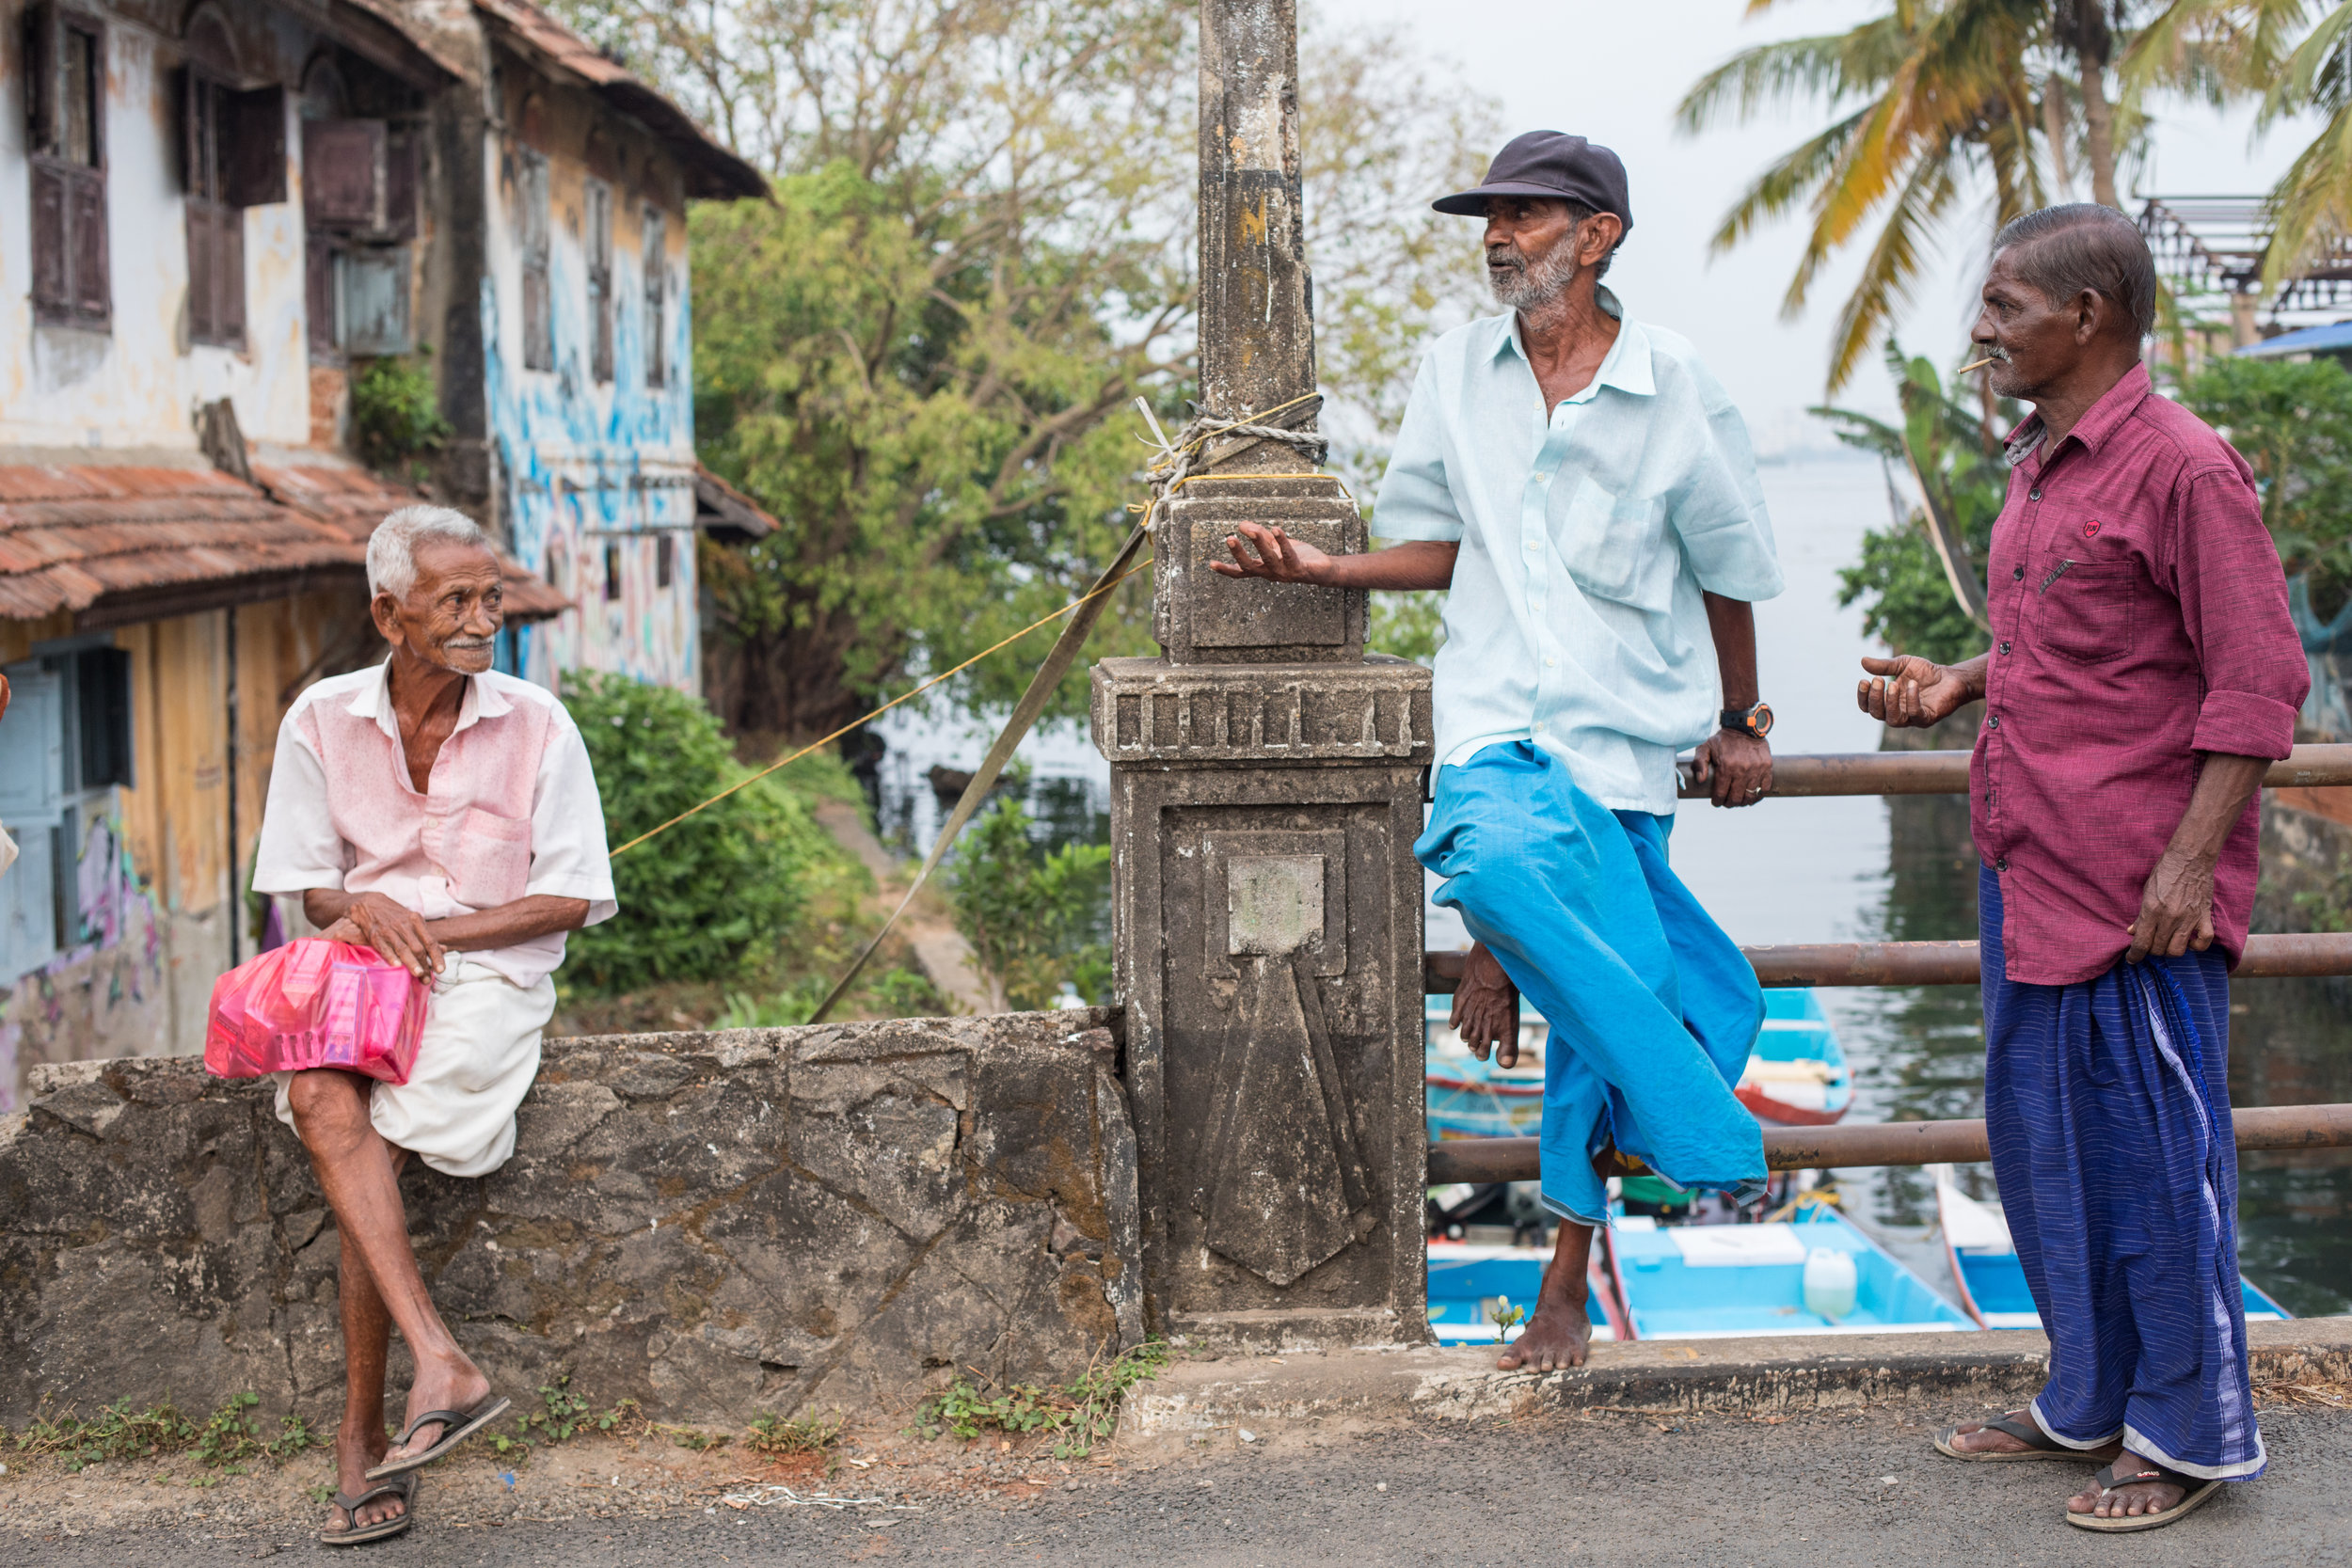 Street Photography in Fort Kochi, Kerala, India.